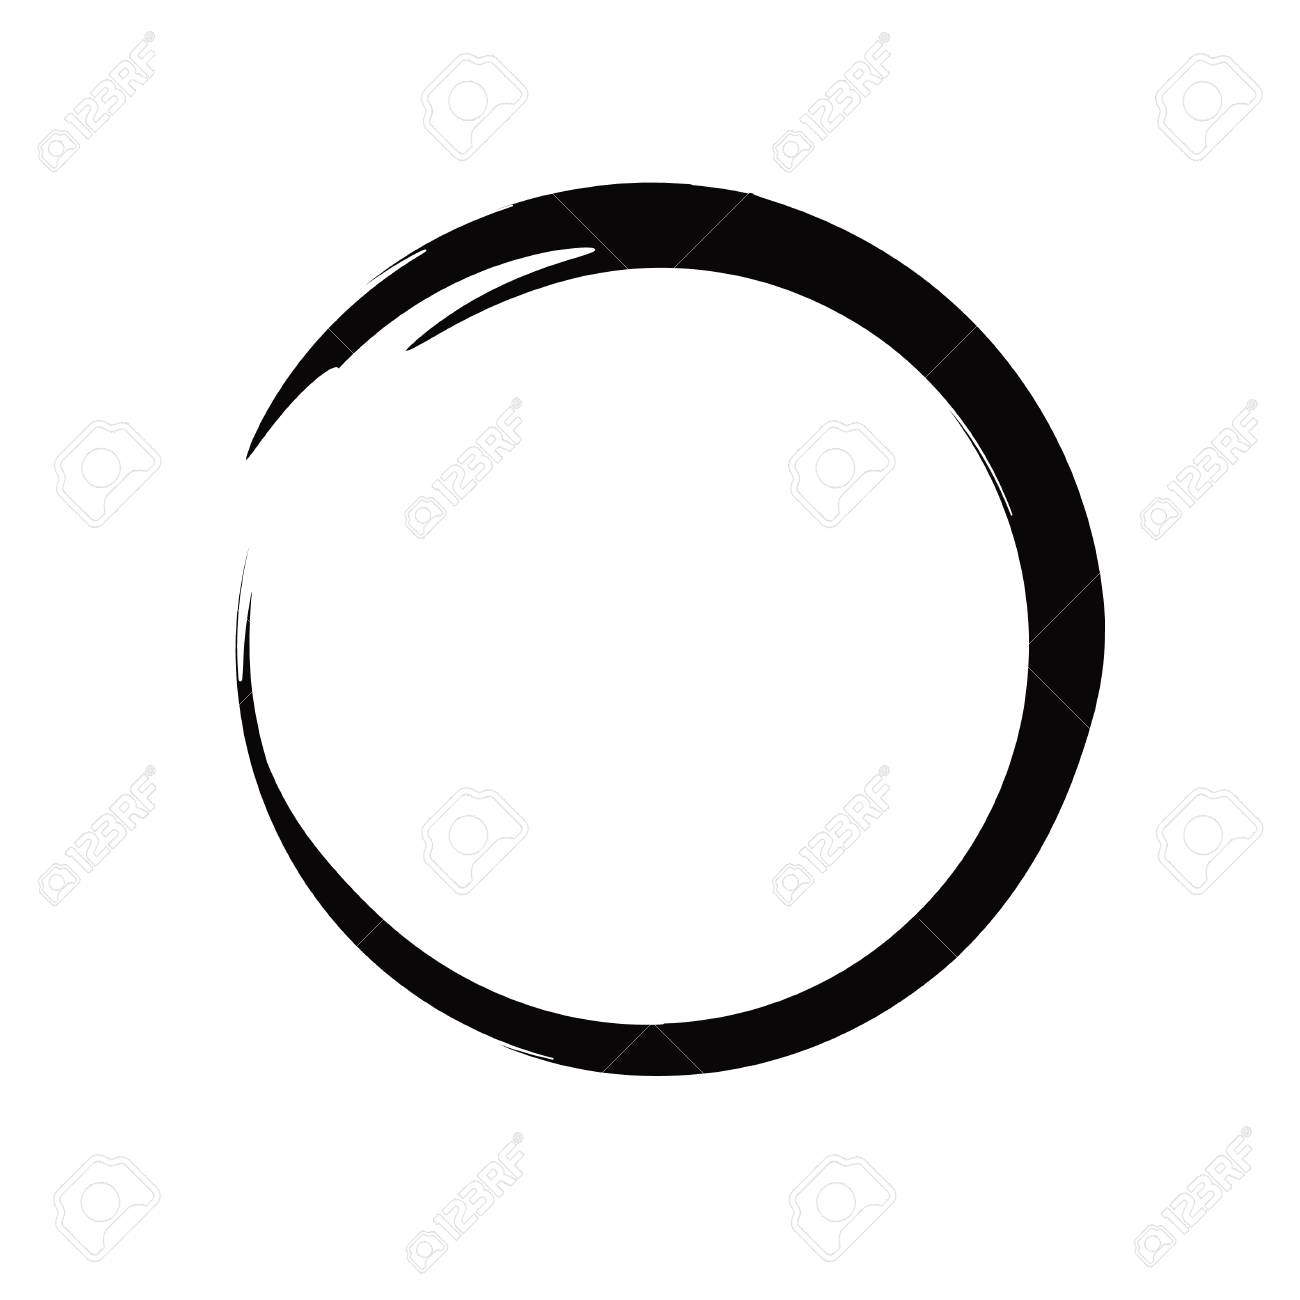 brush painting enso zen circle vector illustration royalty free cliparts vectors and stock illustration image 115949898 brush painting enso zen circle vector illustration